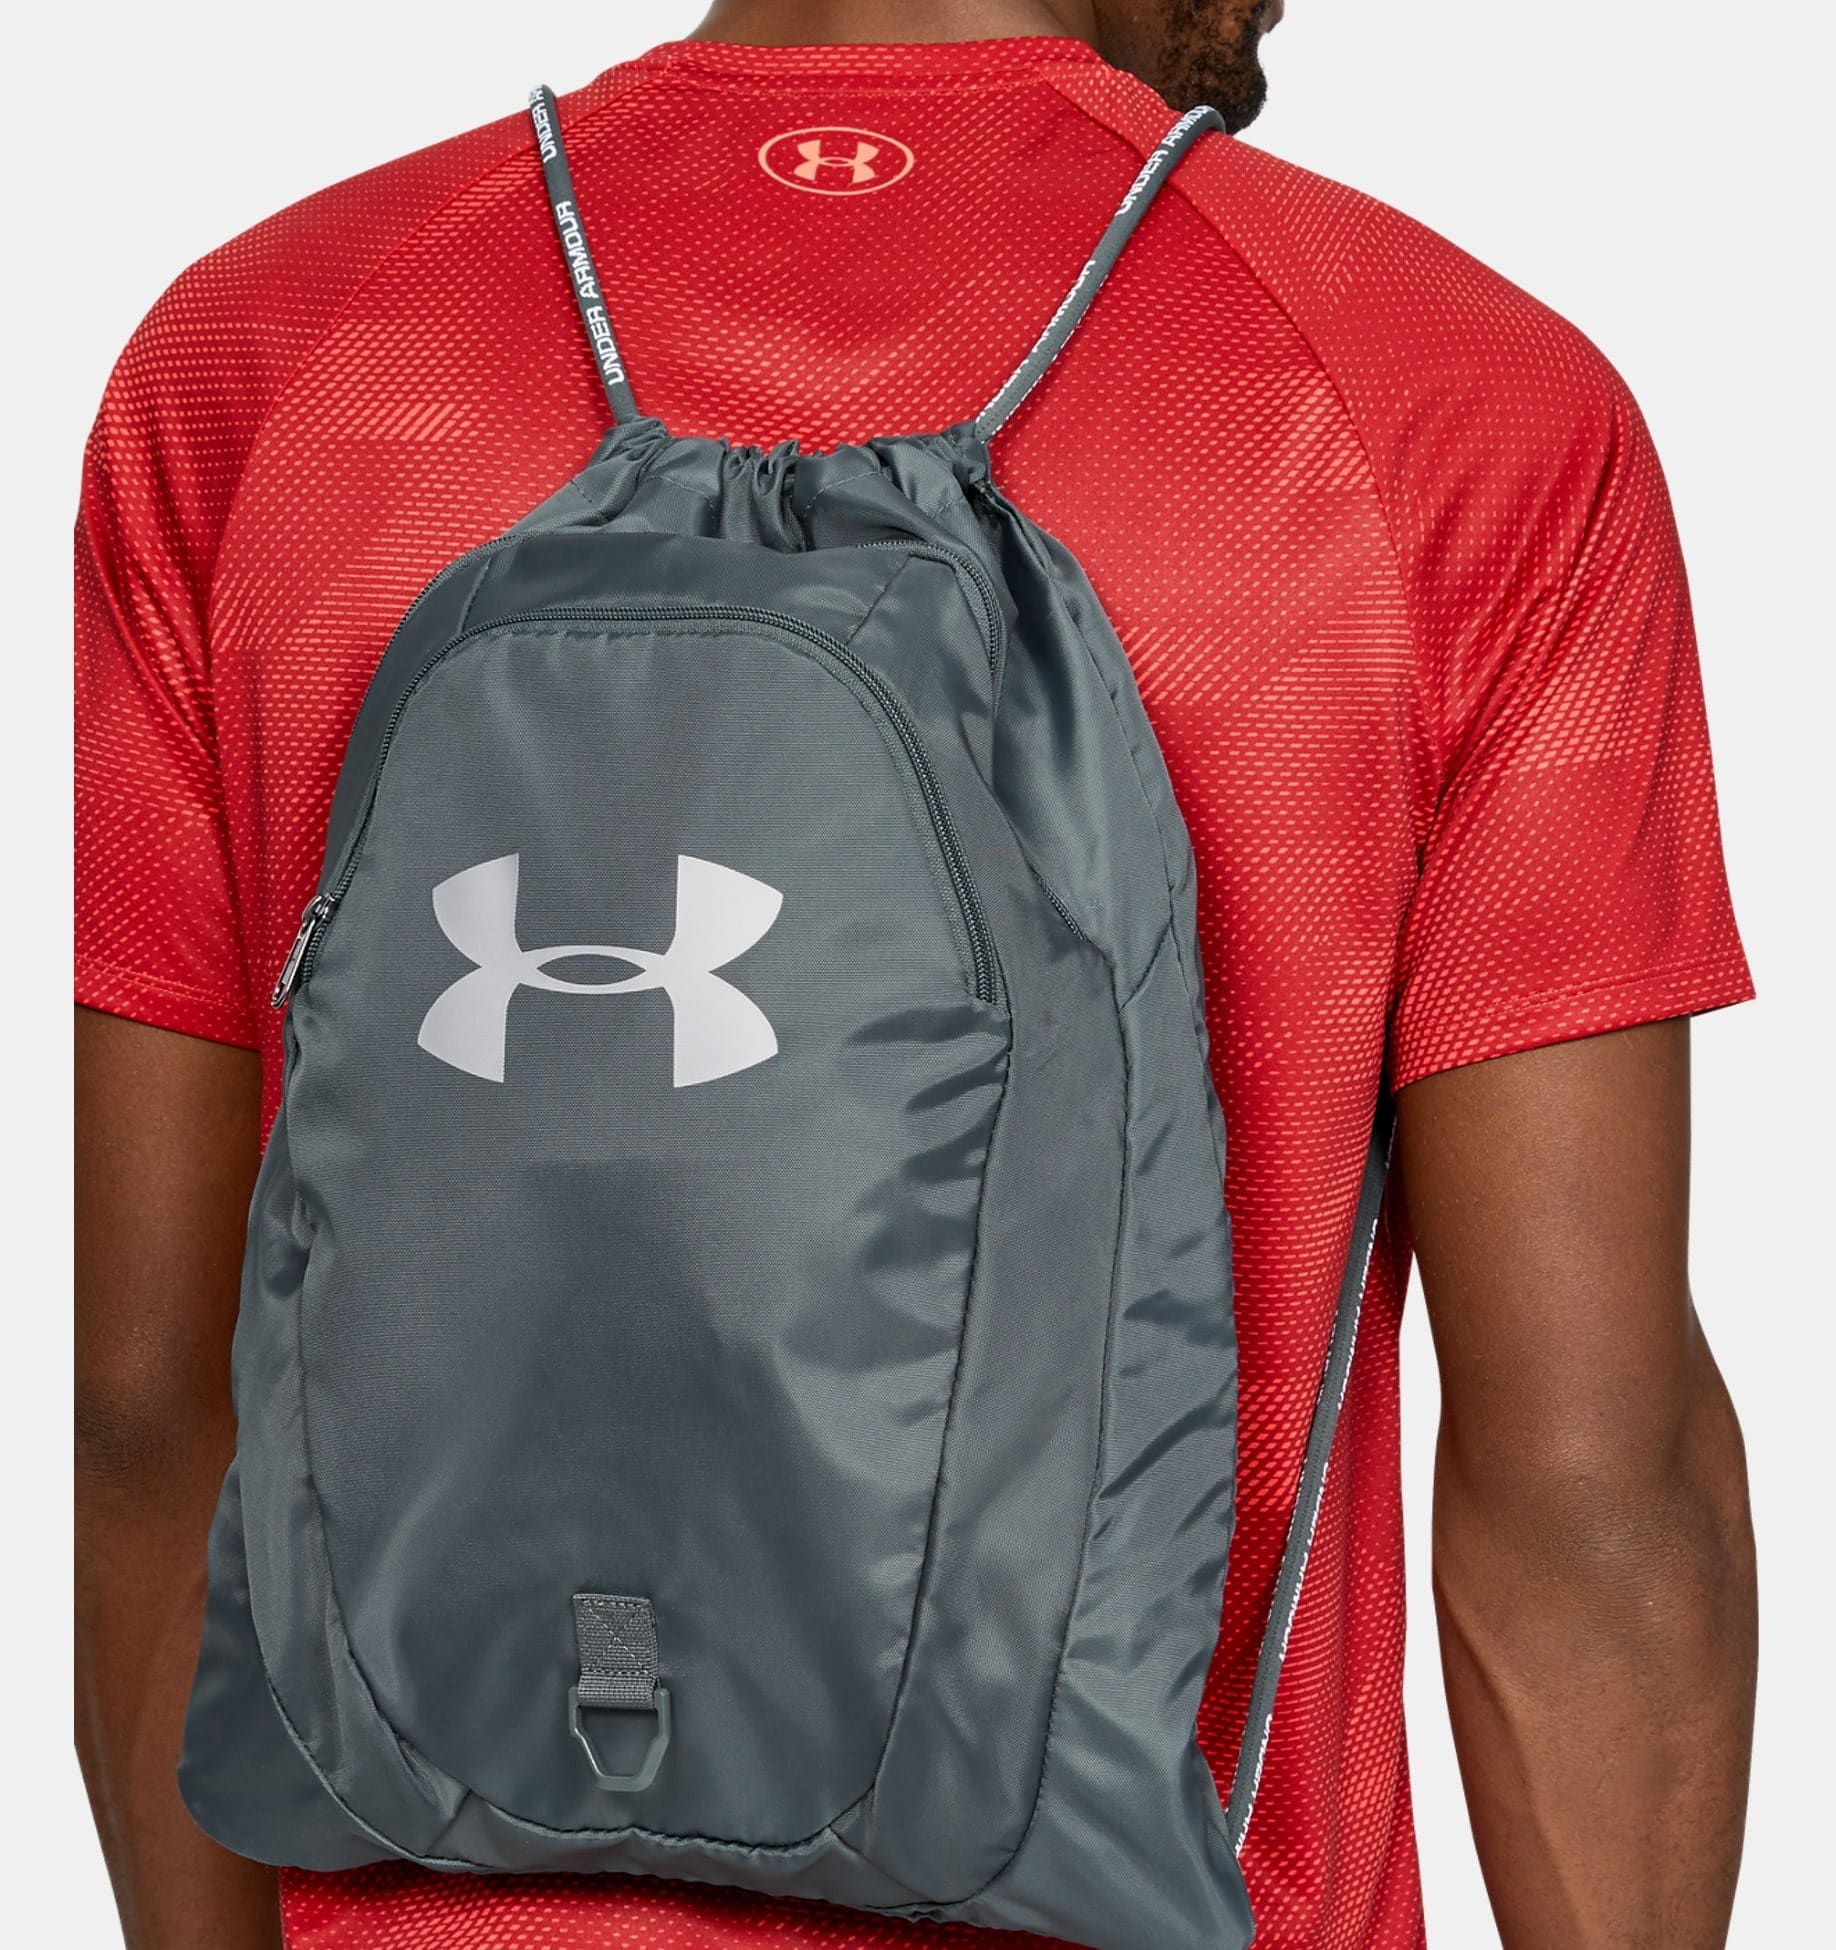 Under Armour UA Undeniable 2.0 Sackpack (Pitch Gray) $15.99 | Other Colors: 2 for $35 + Free Shipping